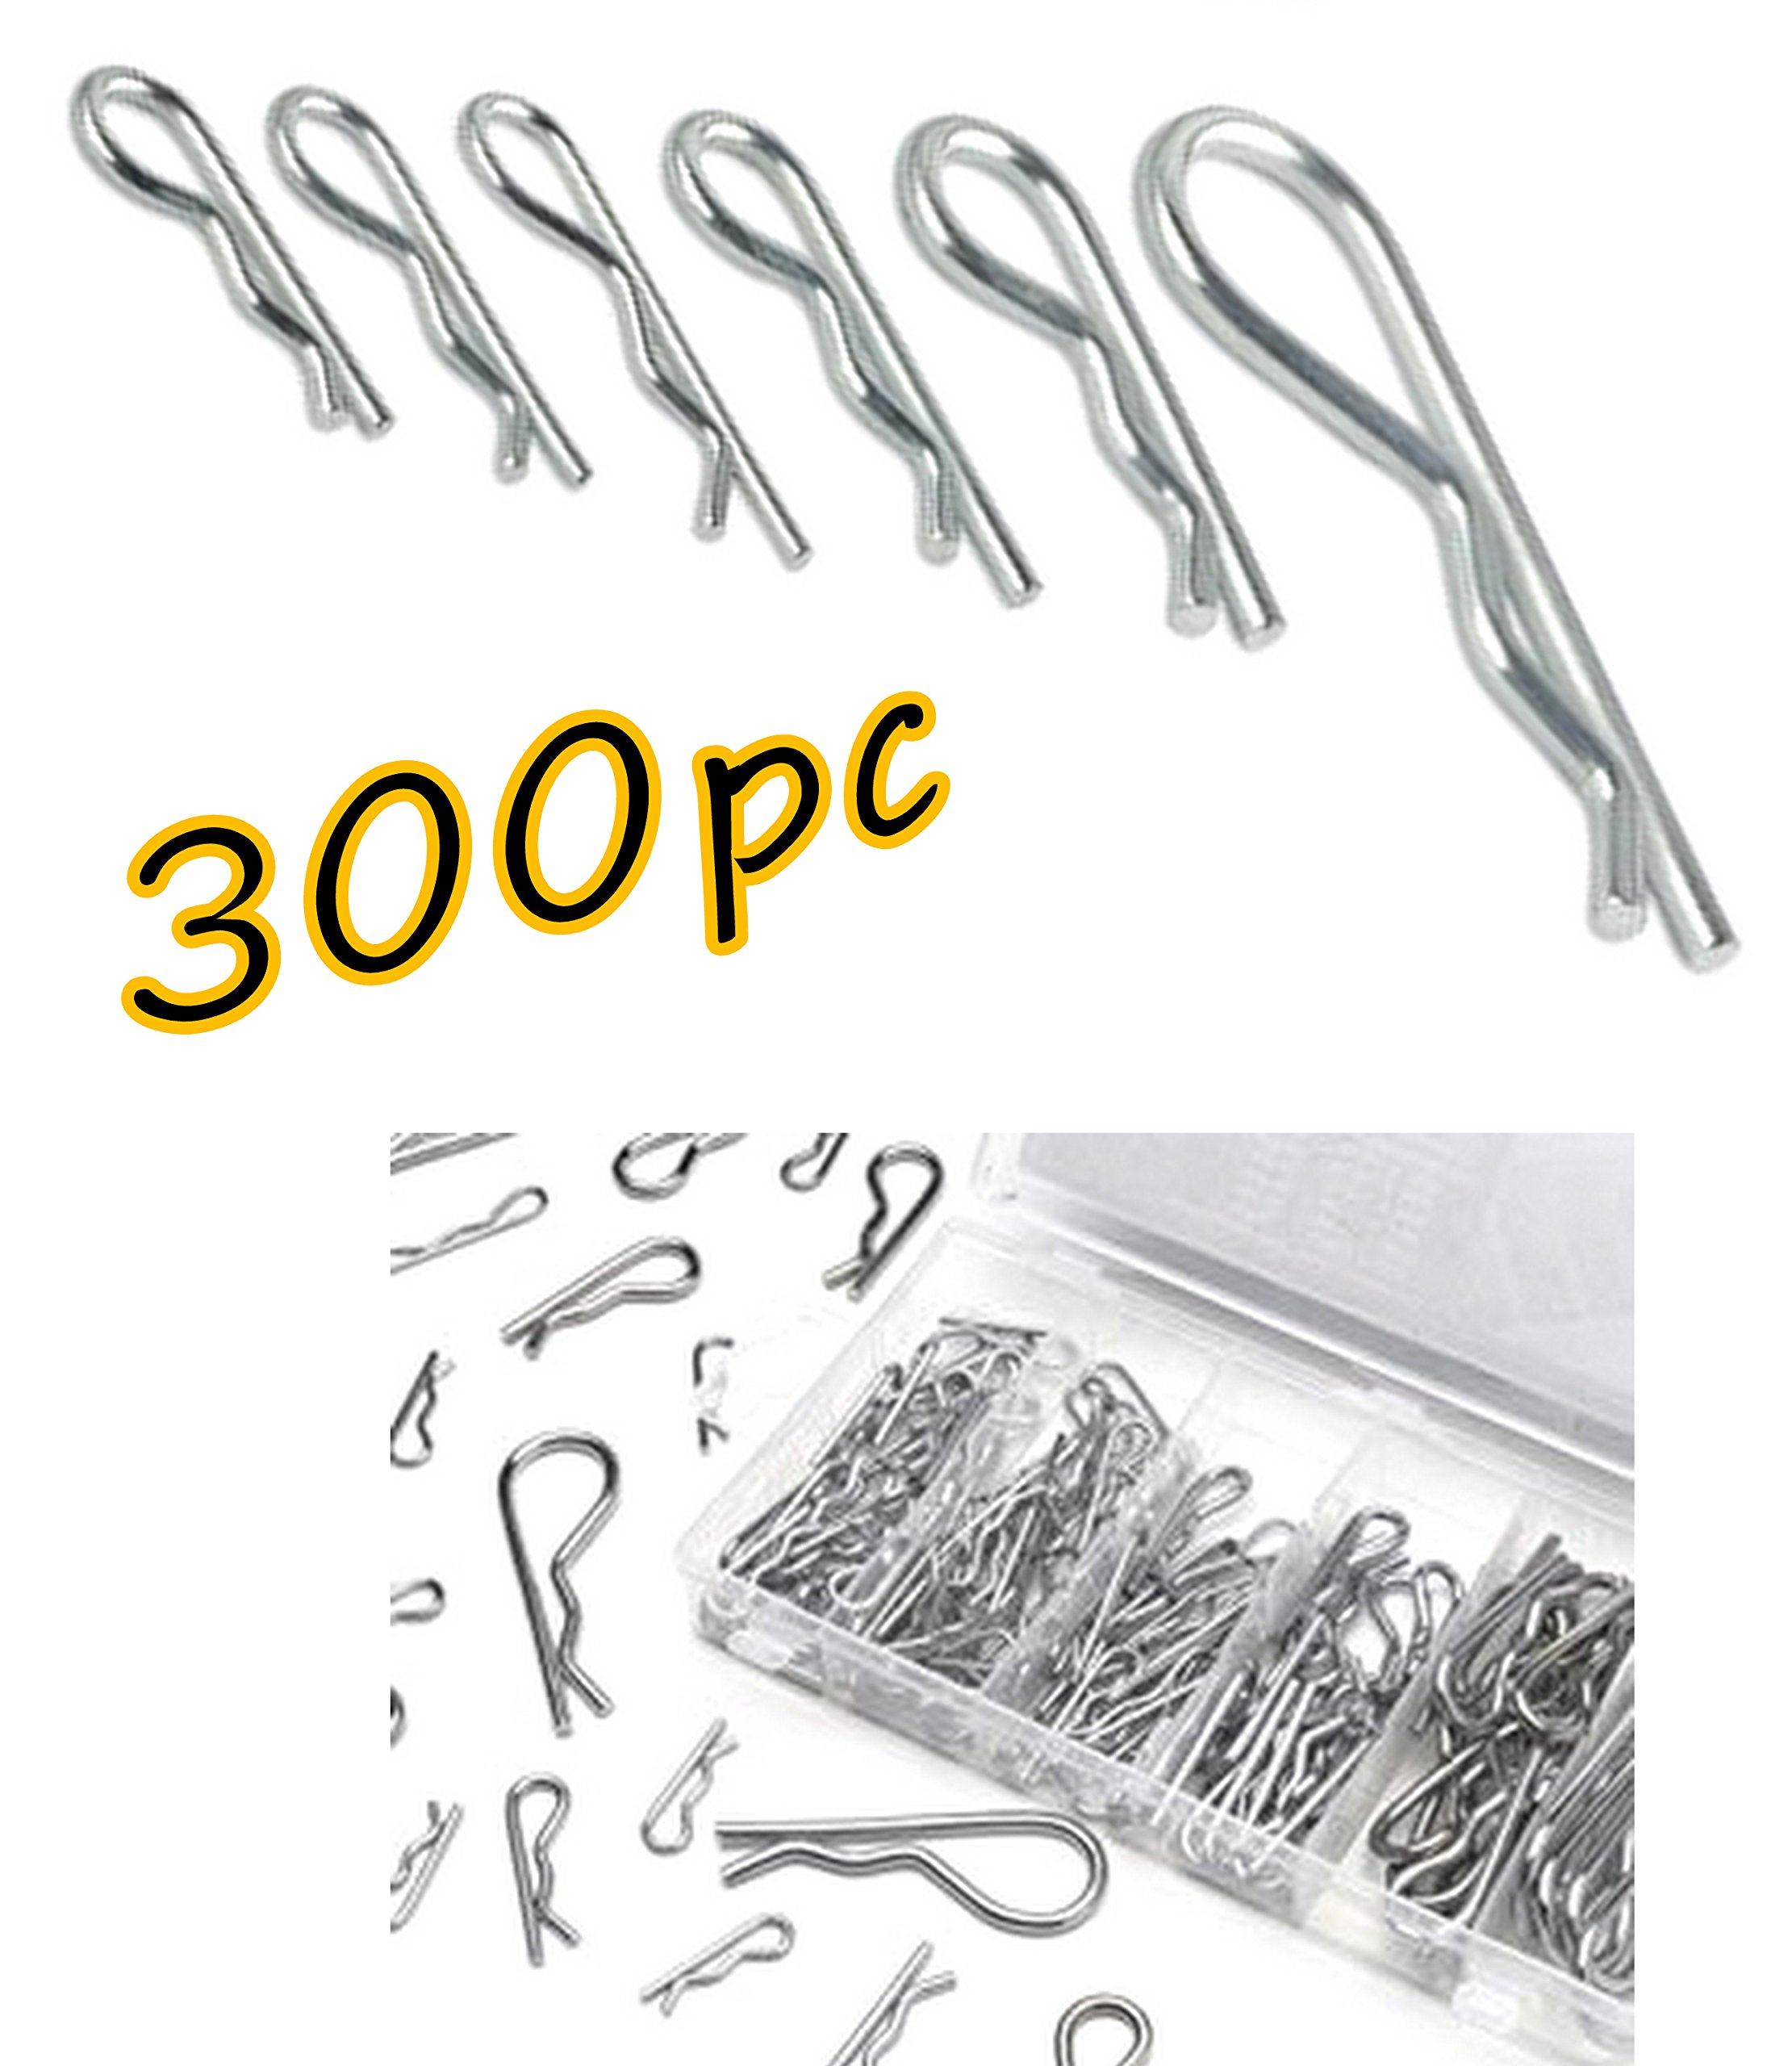 300pc Assorted Premium Quality Tool Shop Trailer Hitch pin Hair Pin Cotter Pin Fastener Clip